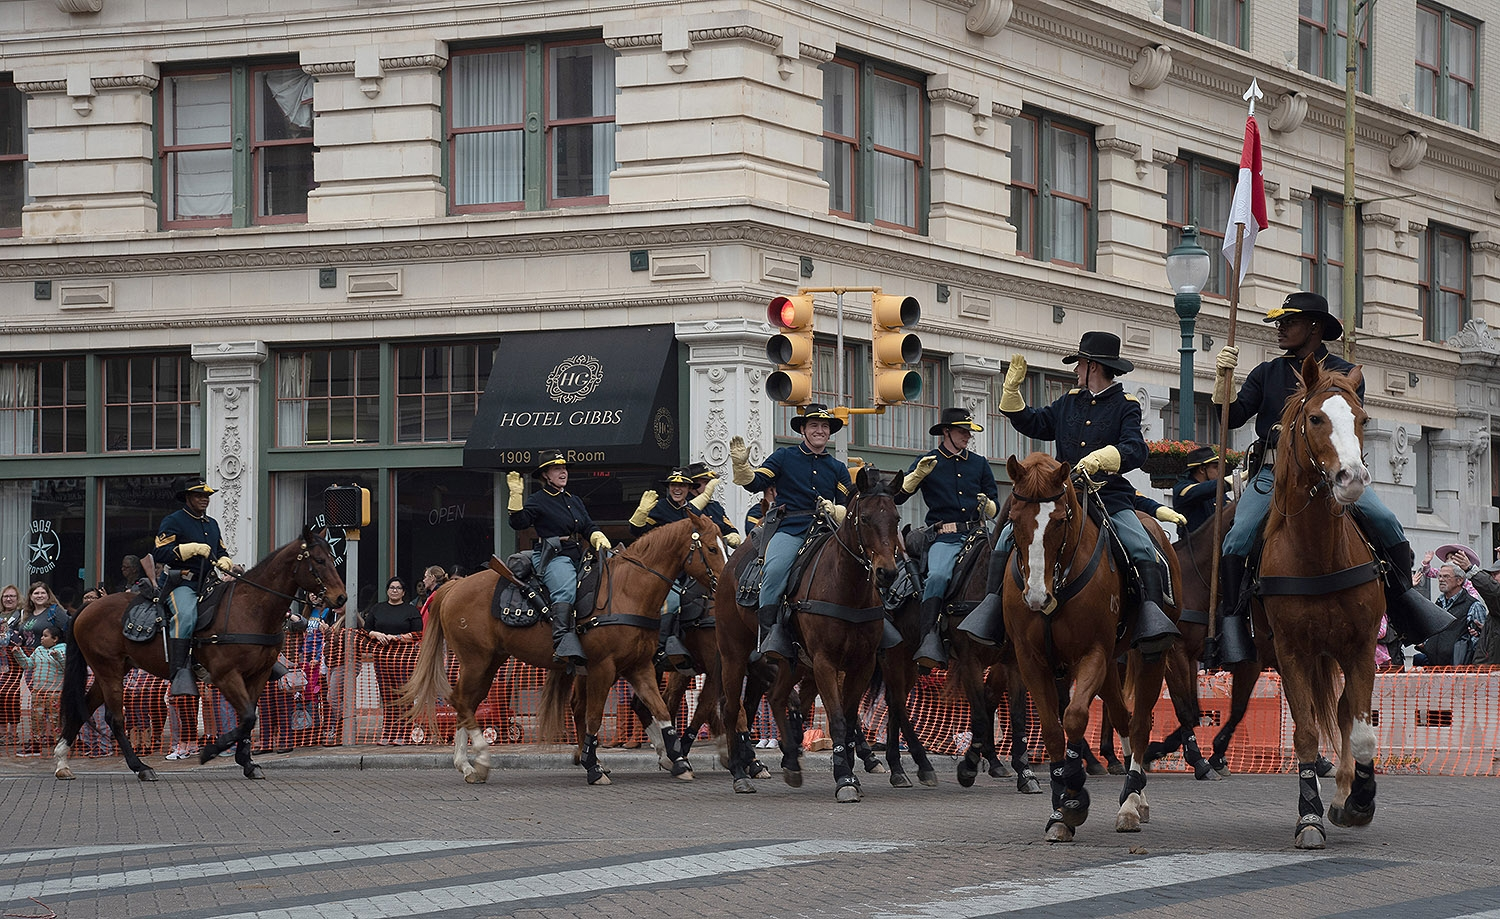 Fort Hood 2st Calvery Division ride their horses during the Western Heritage Parade and Cattle Drive Feb. 2 on S Alamo St. <em><b>V. Finster | Heron</b></em>